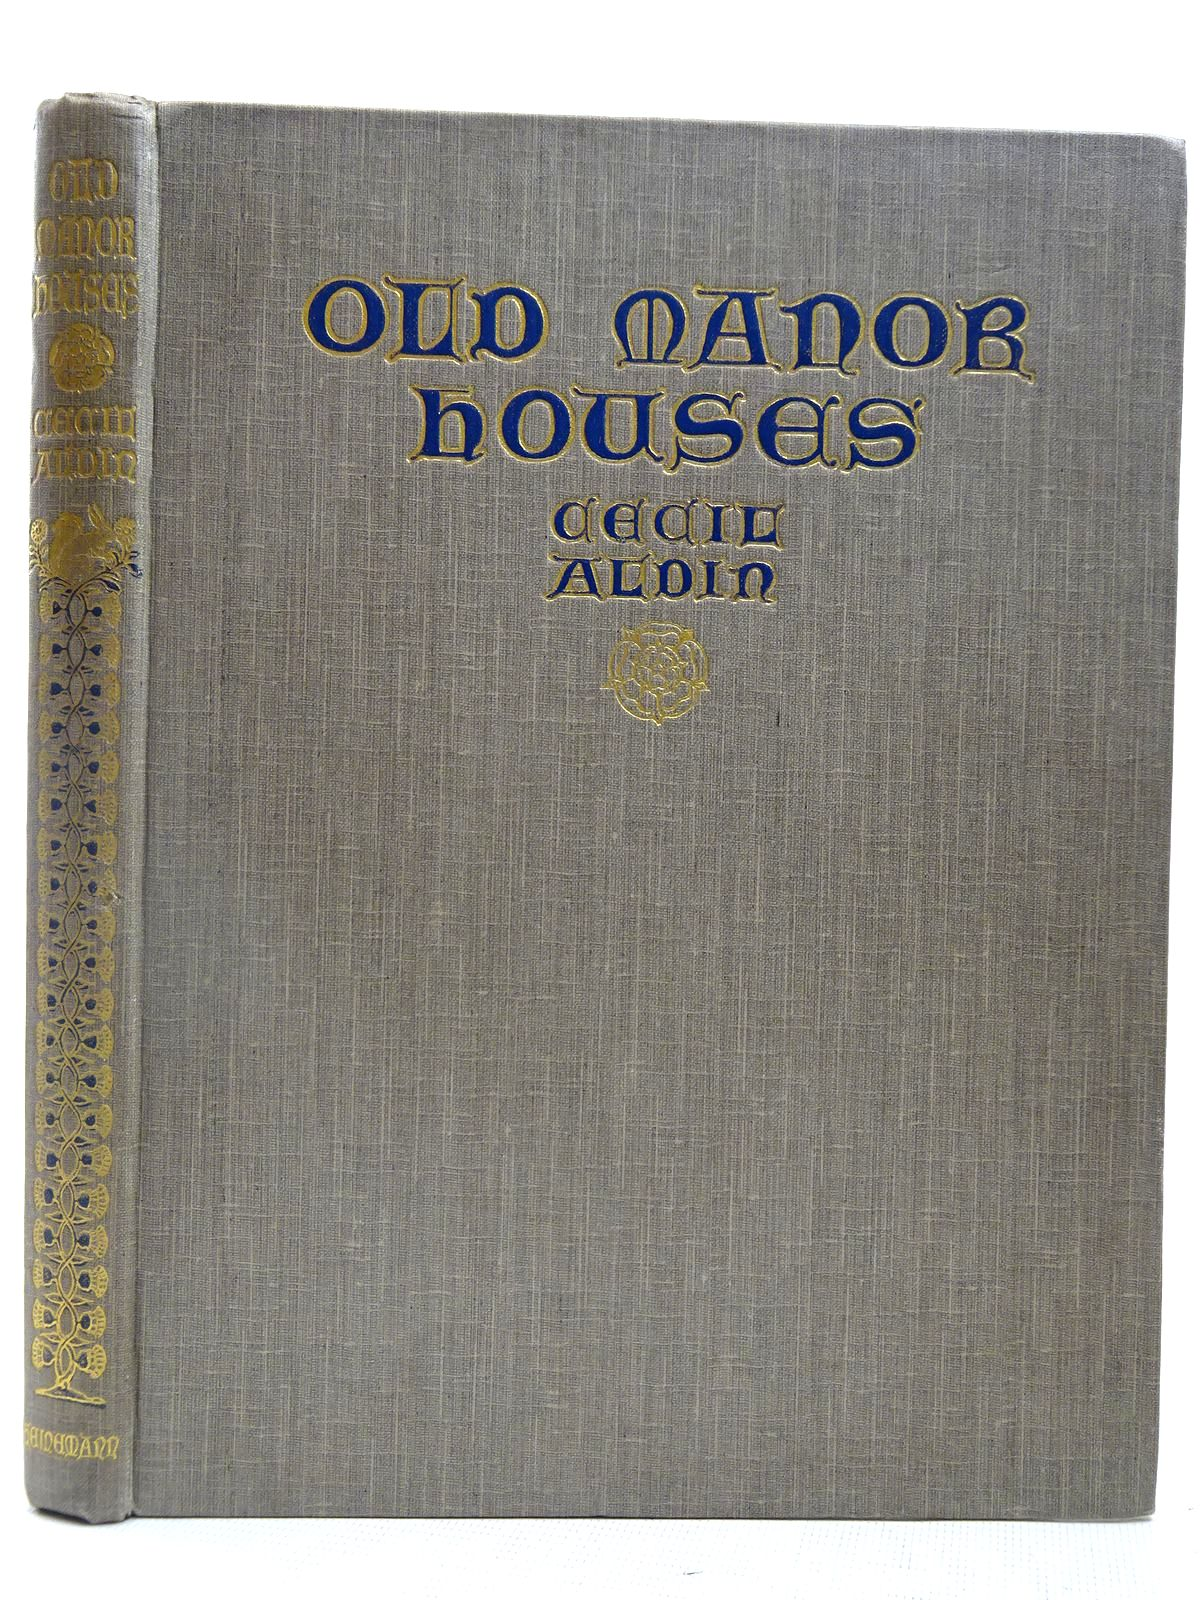 Photo of OLD MANOR HOUSES written by Aldin, Cecil illustrated by Aldin, Cecil published by William Heinemann Ltd. (STOCK CODE: 2127831)  for sale by Stella & Rose's Books